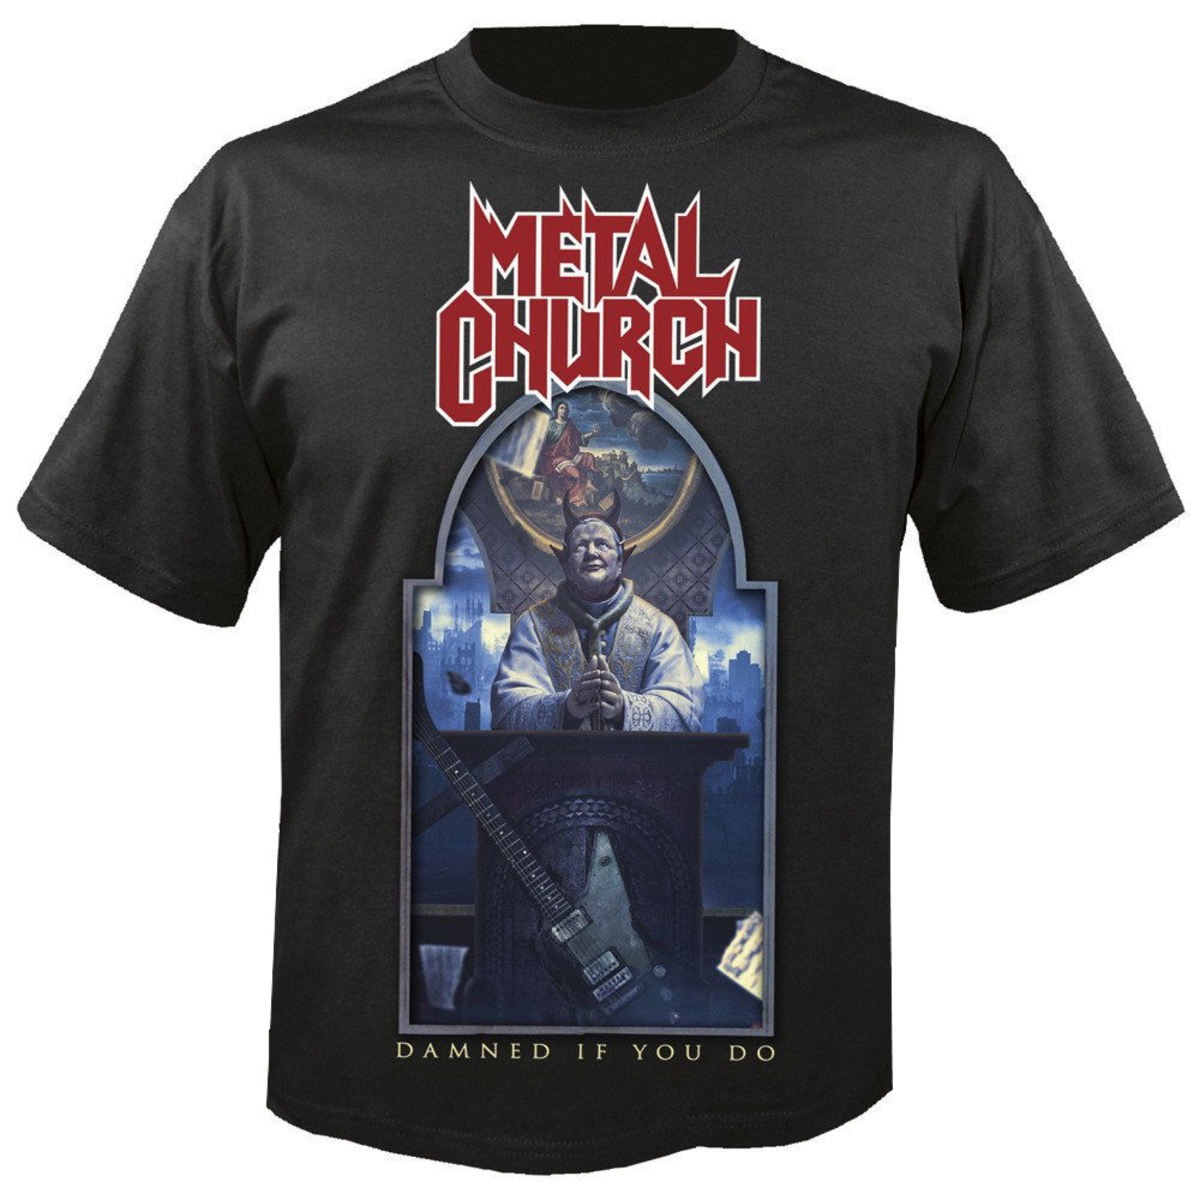 tričko pánské METAL CHURCH - Damned if you do - NUCLEAR BLAST - 27483_TS